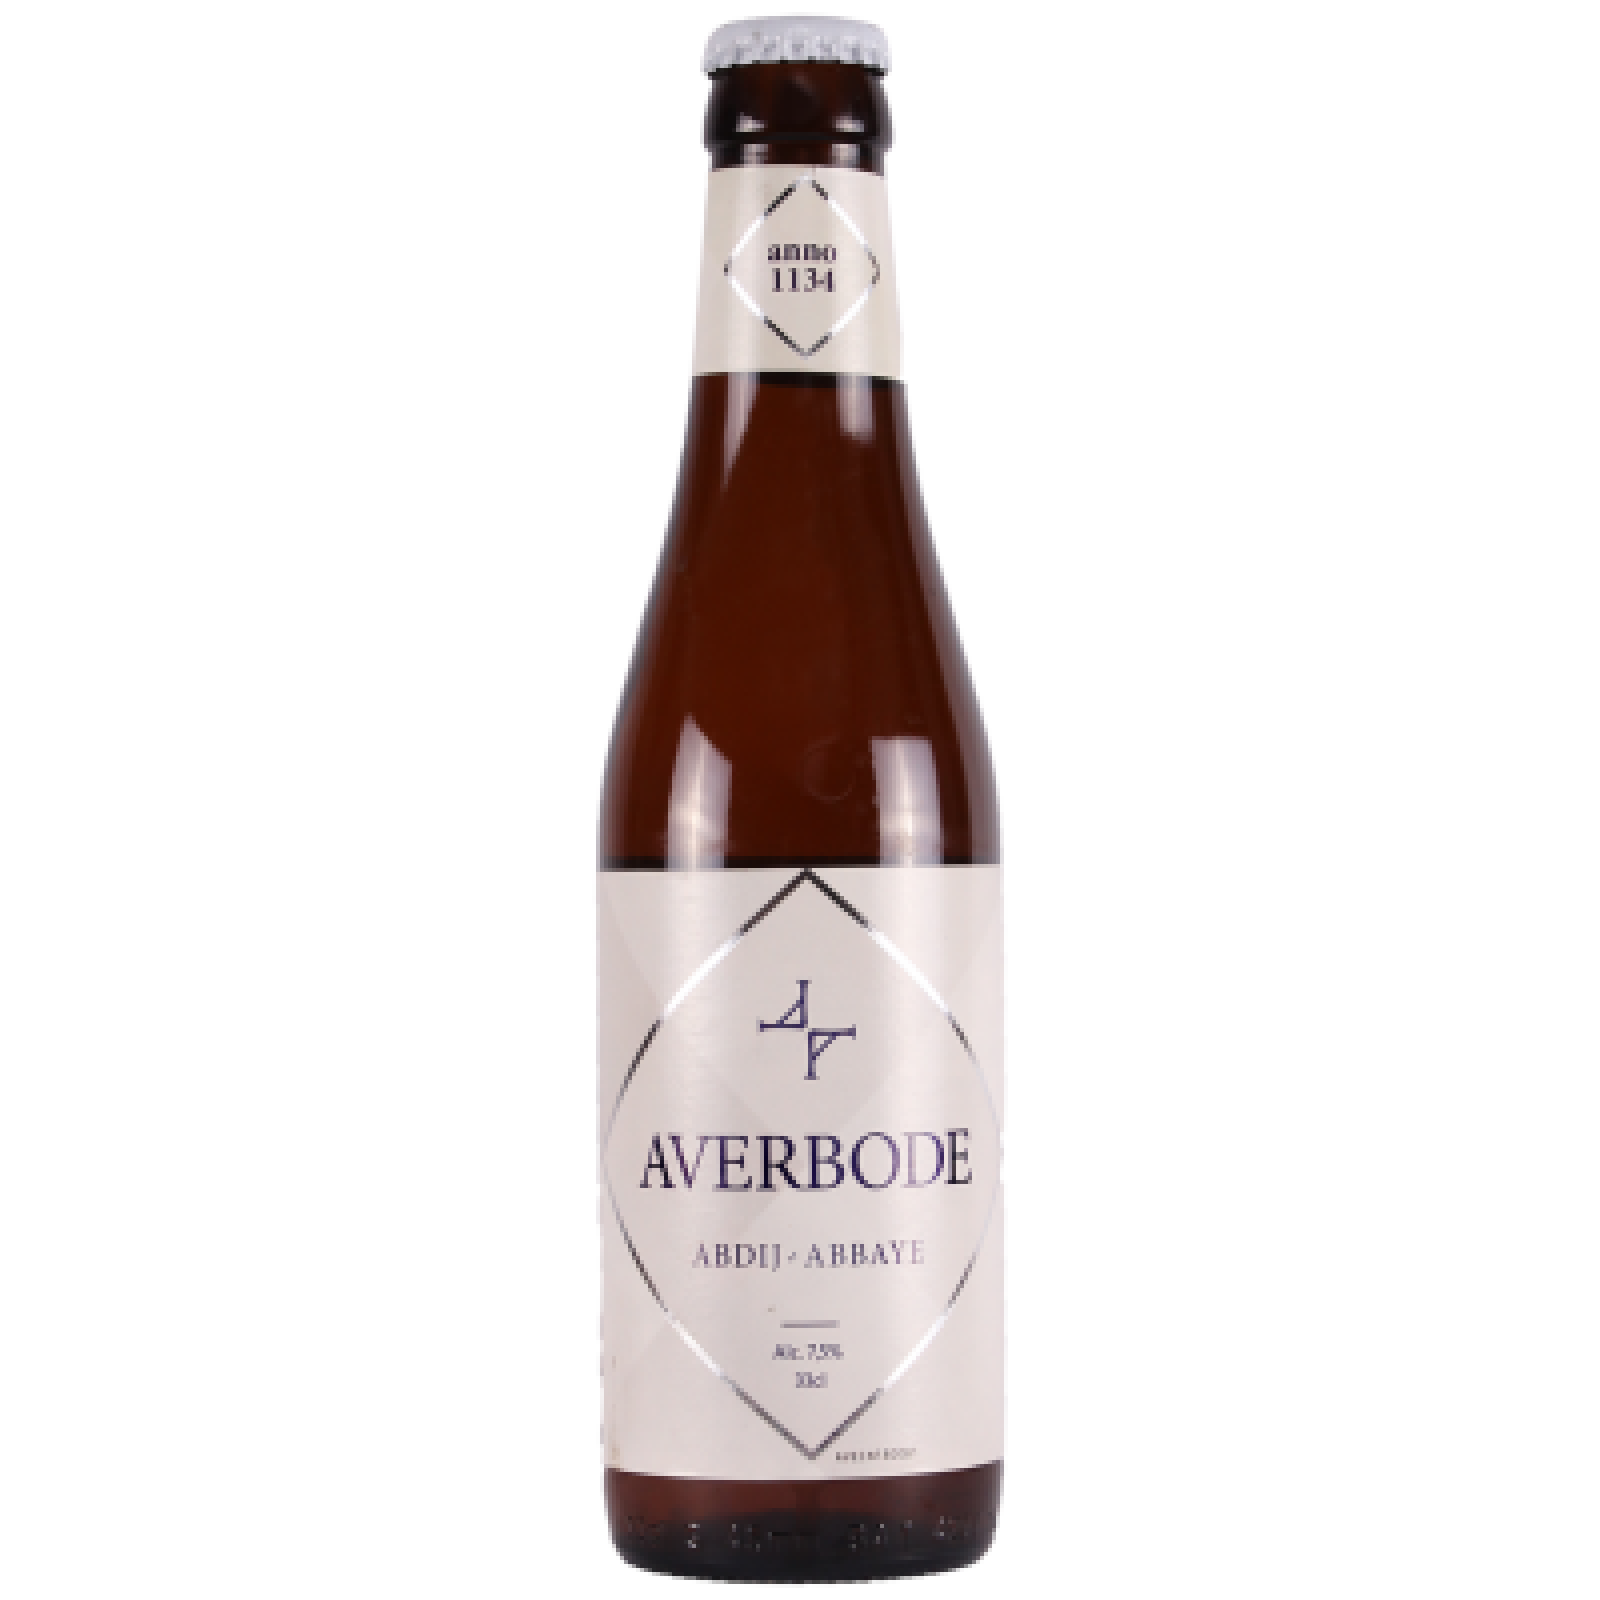 AVERBODE Blond Abbey Beer 7.5% 330ml